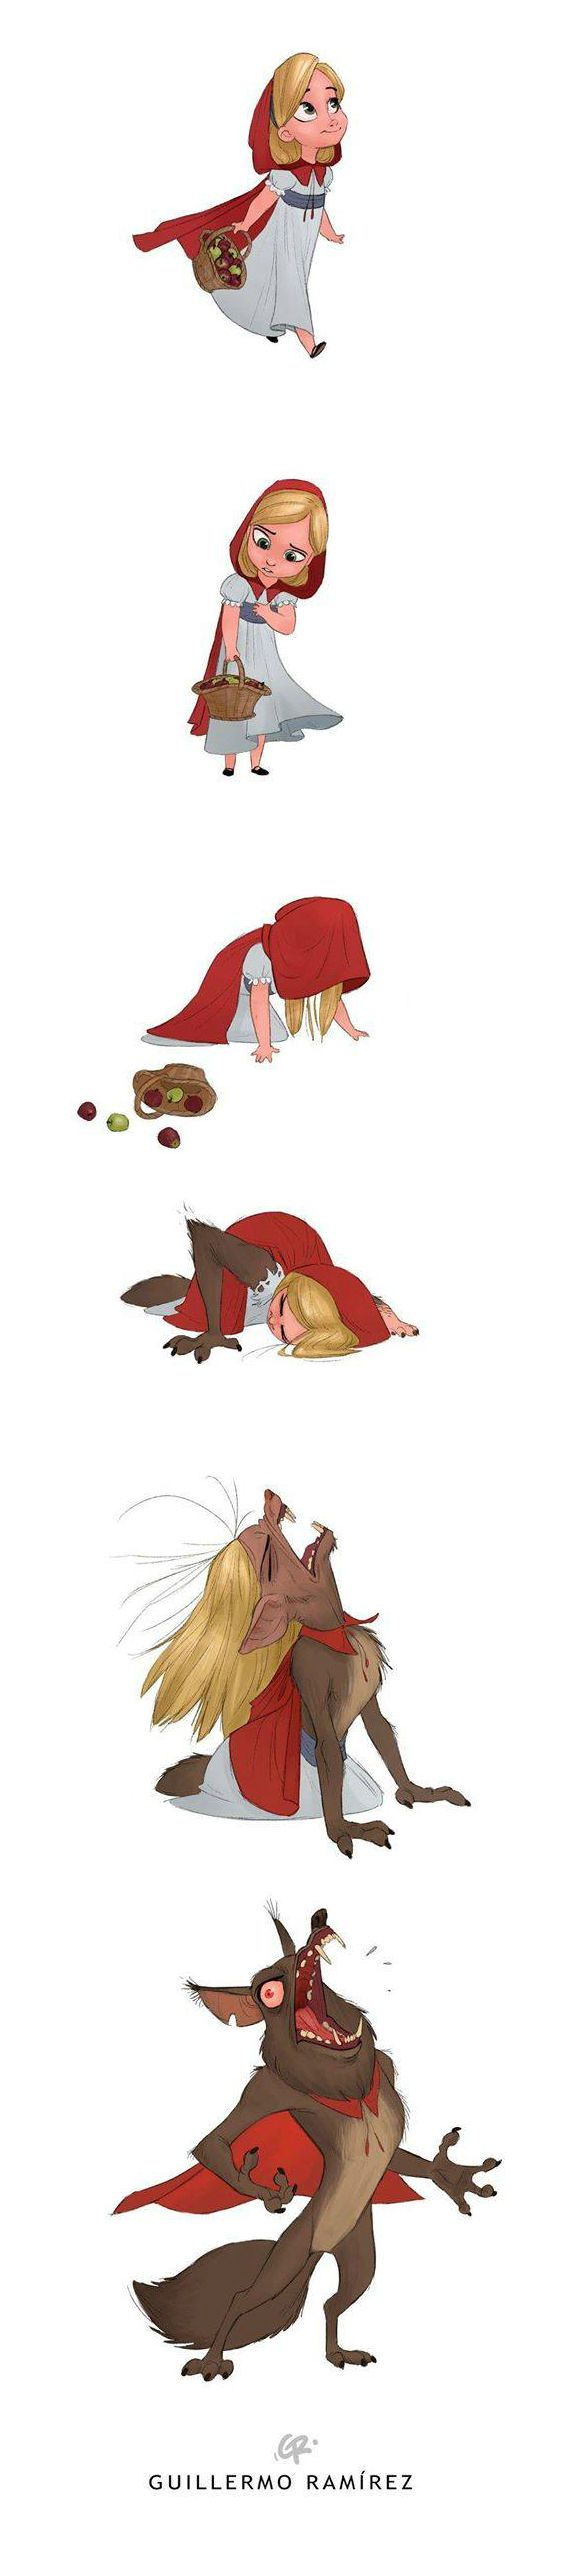 """""""What if little red riding hood was a werewolf?"""" by Guillermo Ramírez Blog/Website 